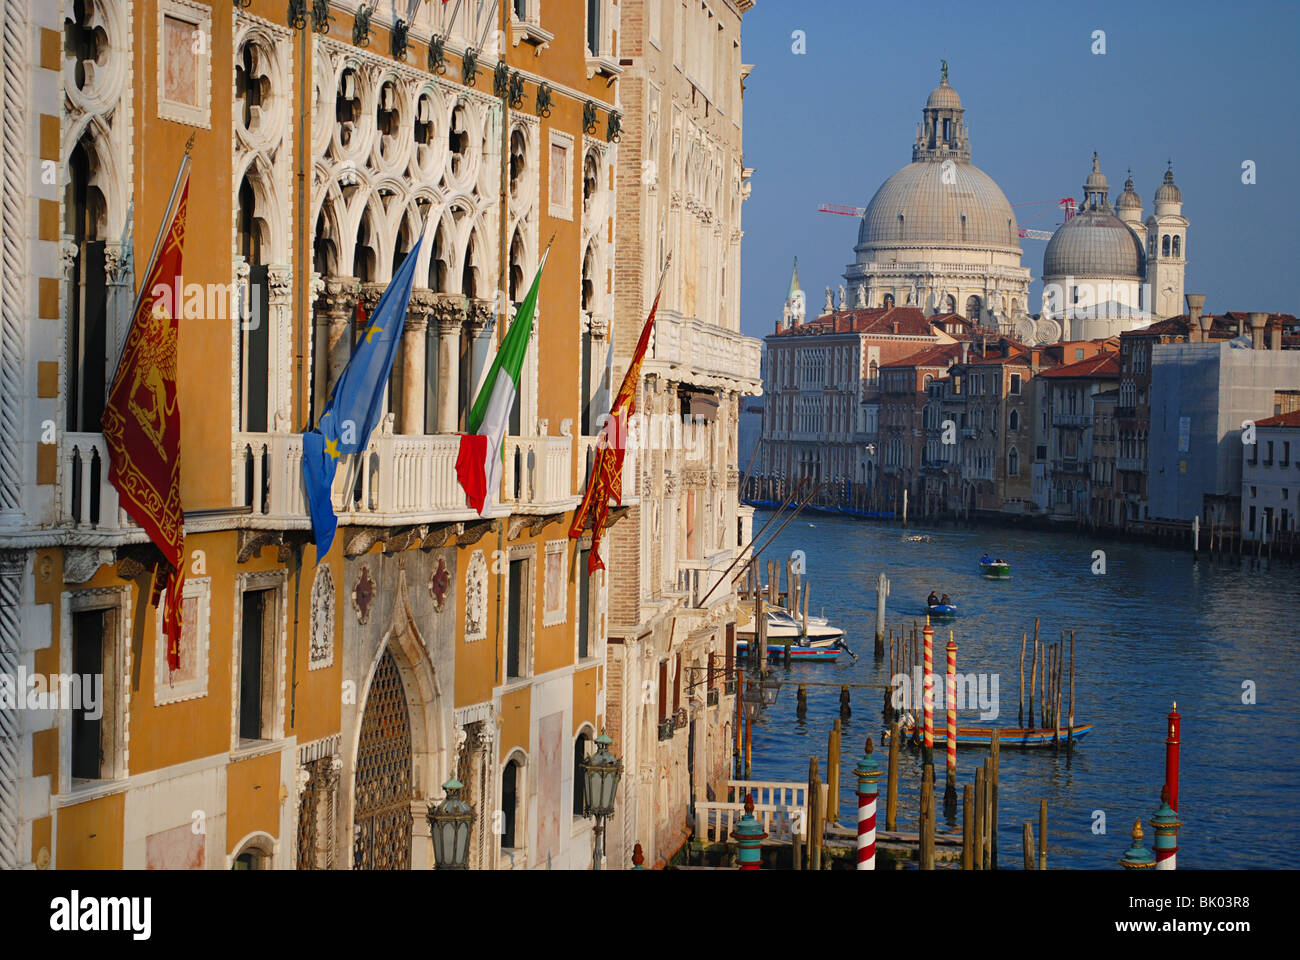 View of hotels and the Santa Maria della Salute church, from the Accademia bridge, Venice, Italy - Stock Image